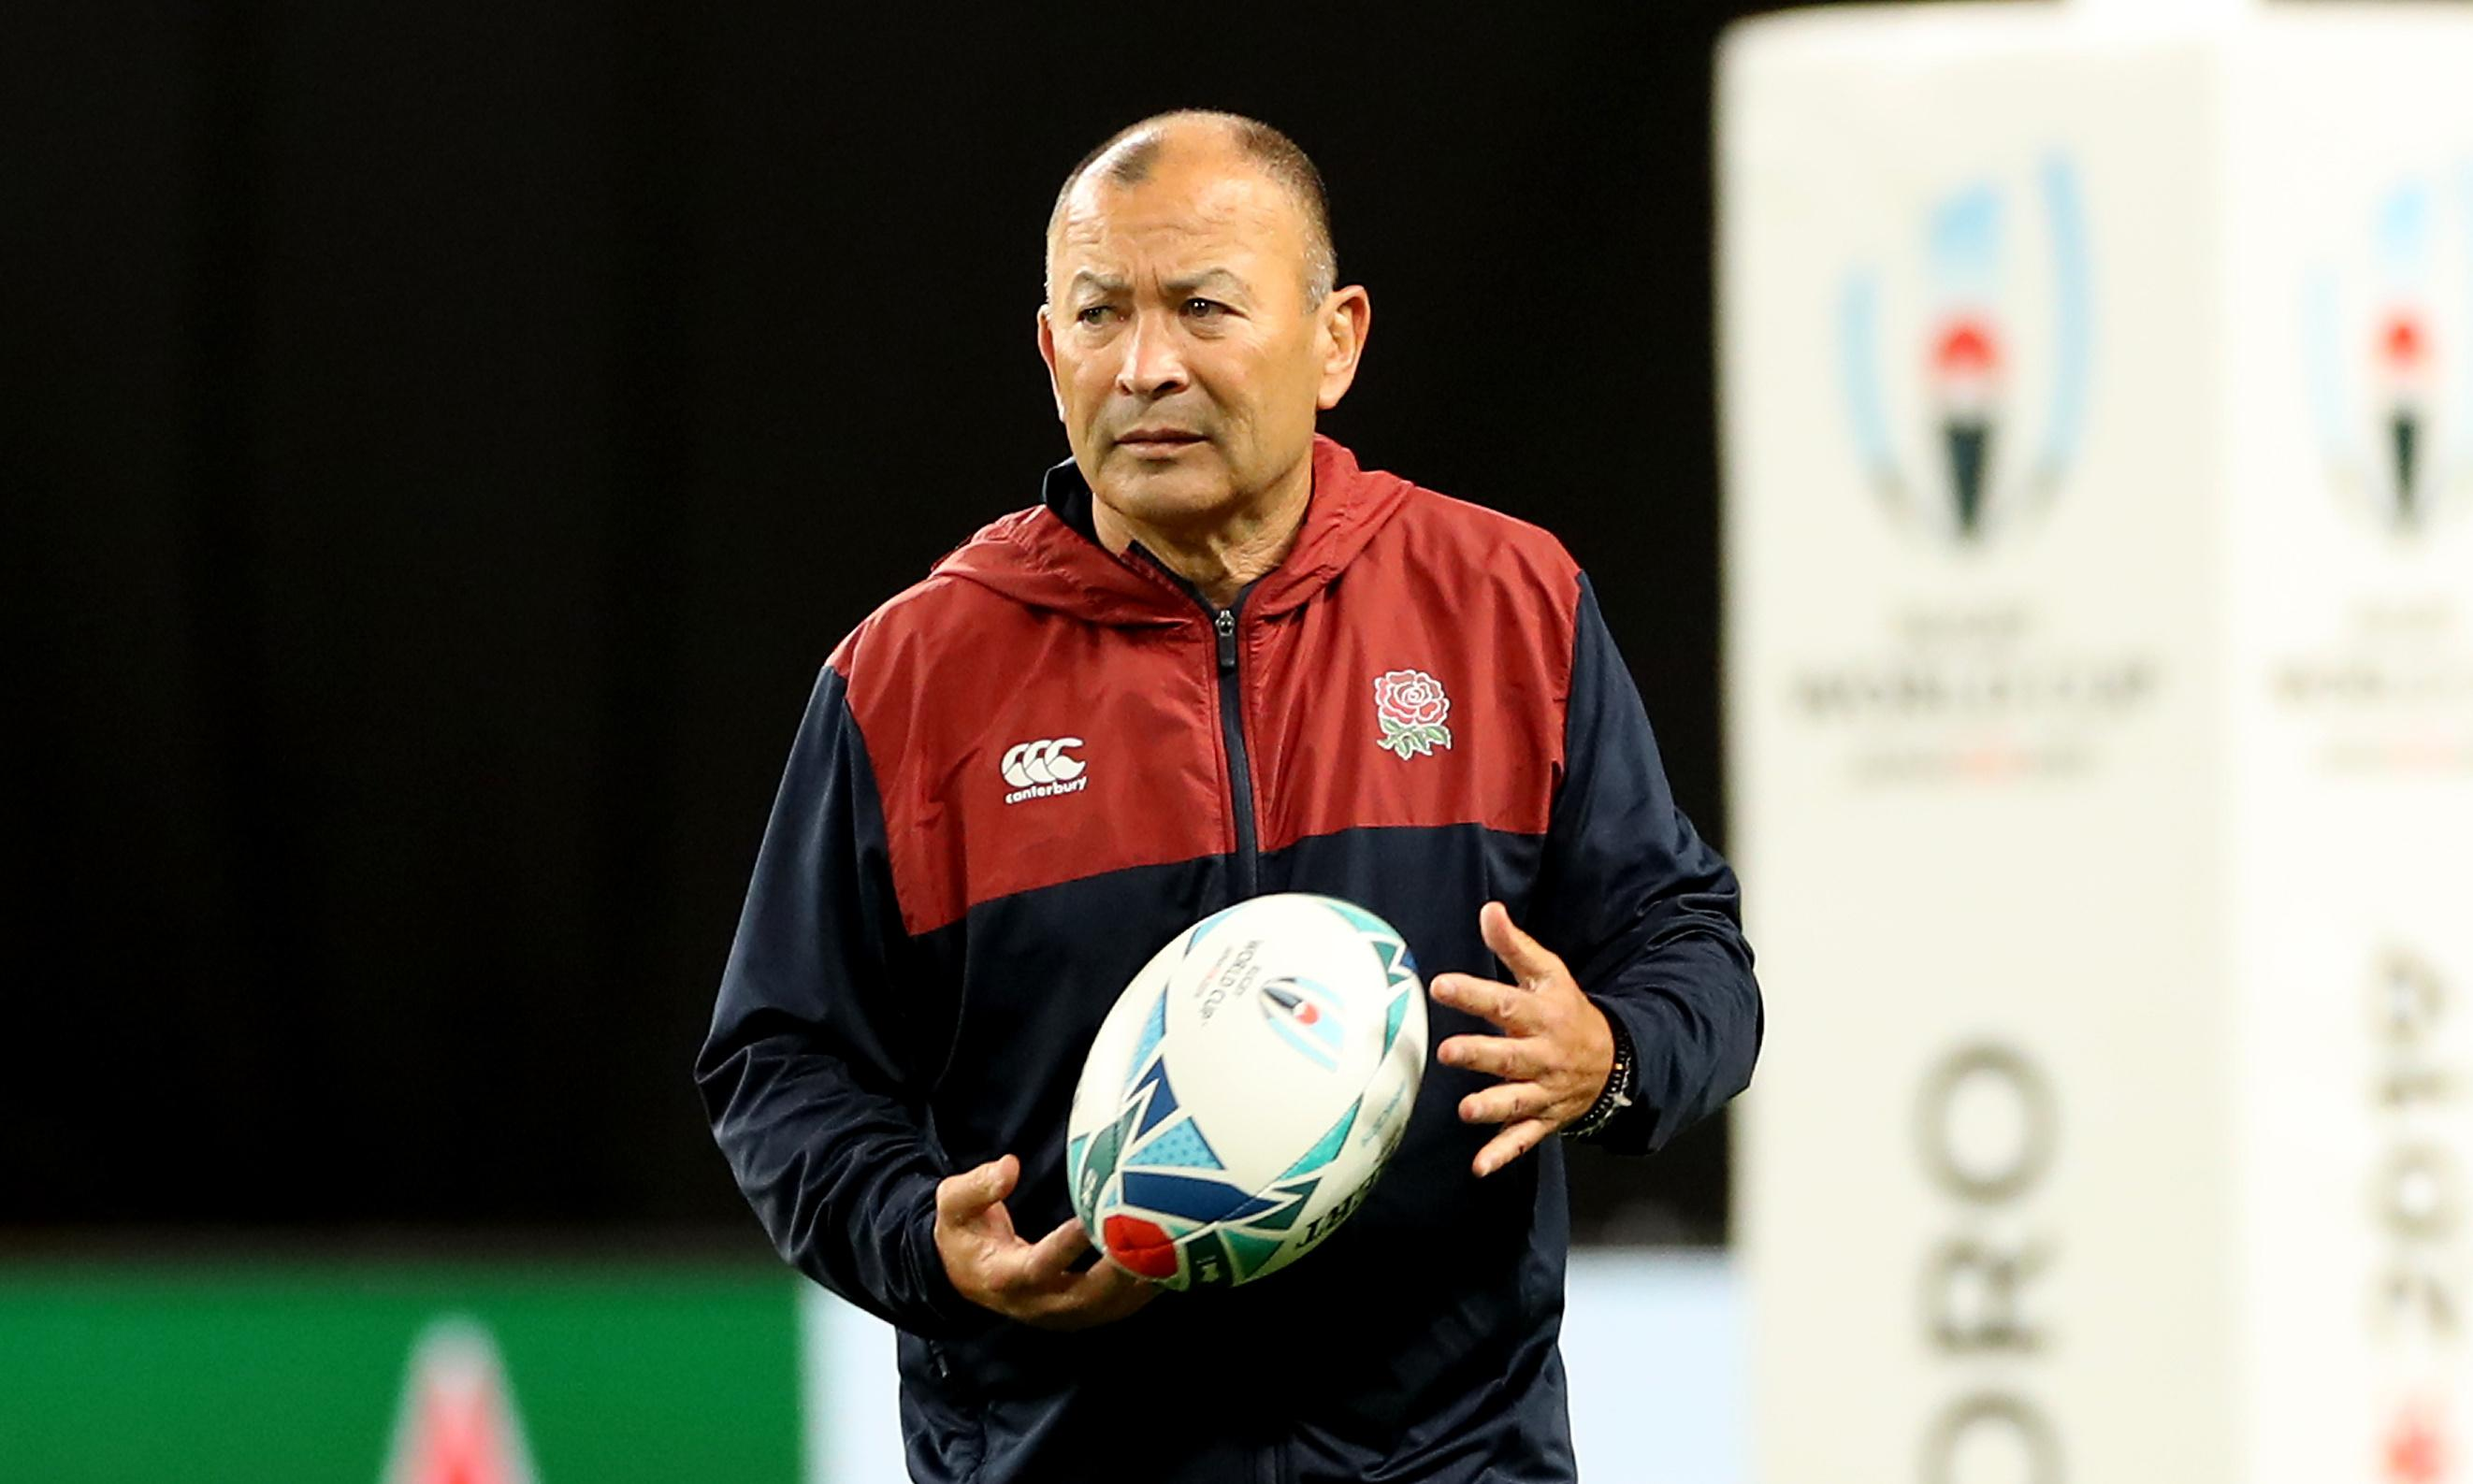 England's World Cup preparations disrupted by team doctor's exit